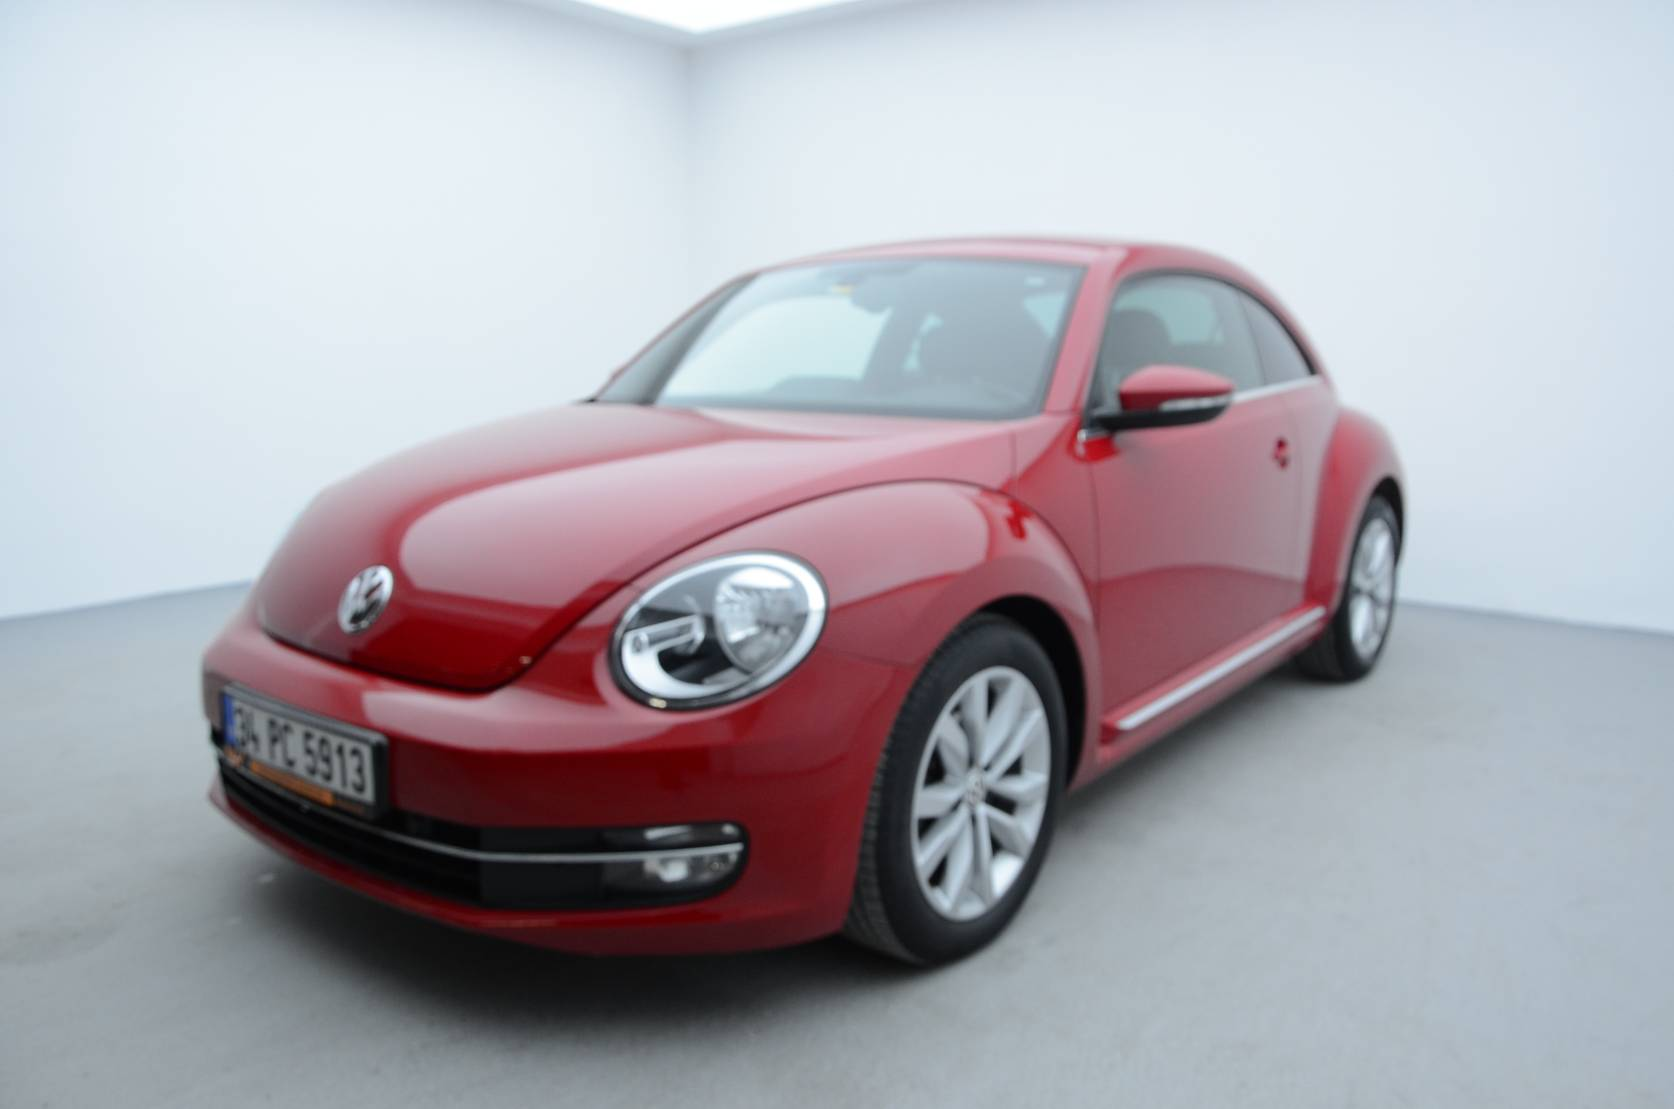 Volkswagen Beetle The 1.2 TSI DSG Blue Motion Technologie, Design detail1